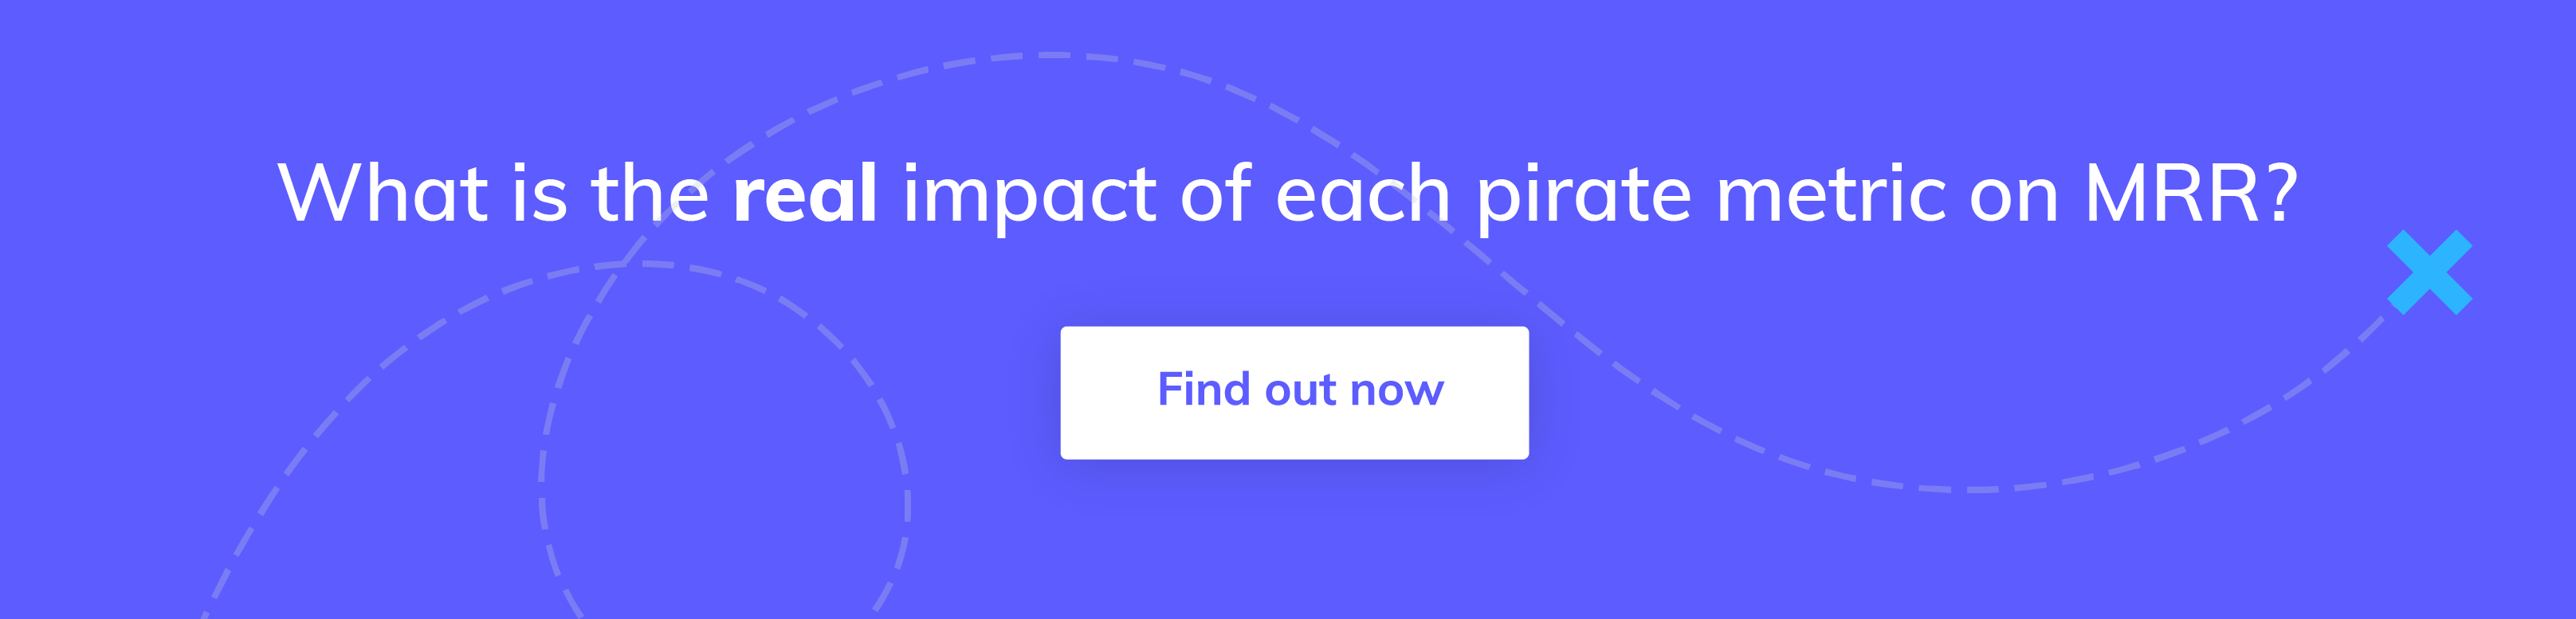 Click on this call to action button to go to the Appcues Pirate Metrics Calculator, a free tool to help you compare the impact of each metric on your saas business growth.